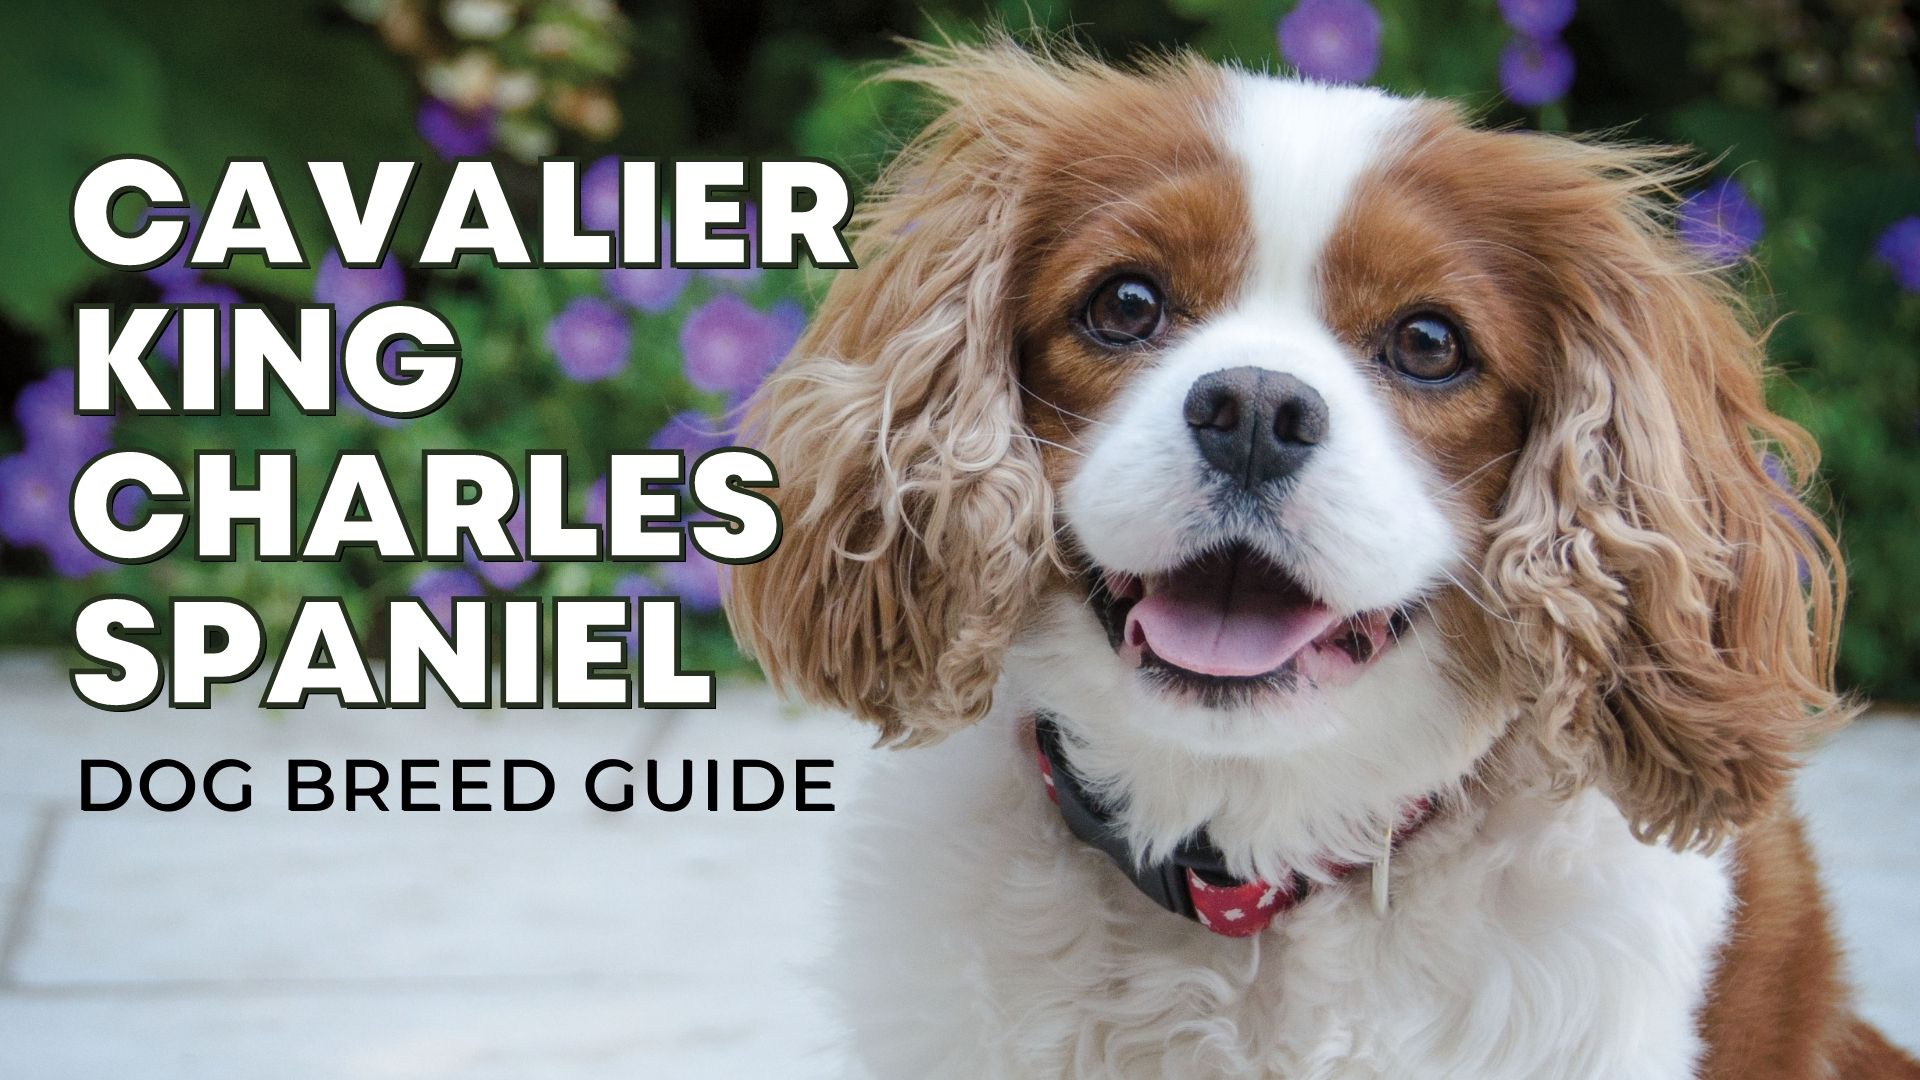 Dog Breed Guide: The Cavalier King Charles Spaniel